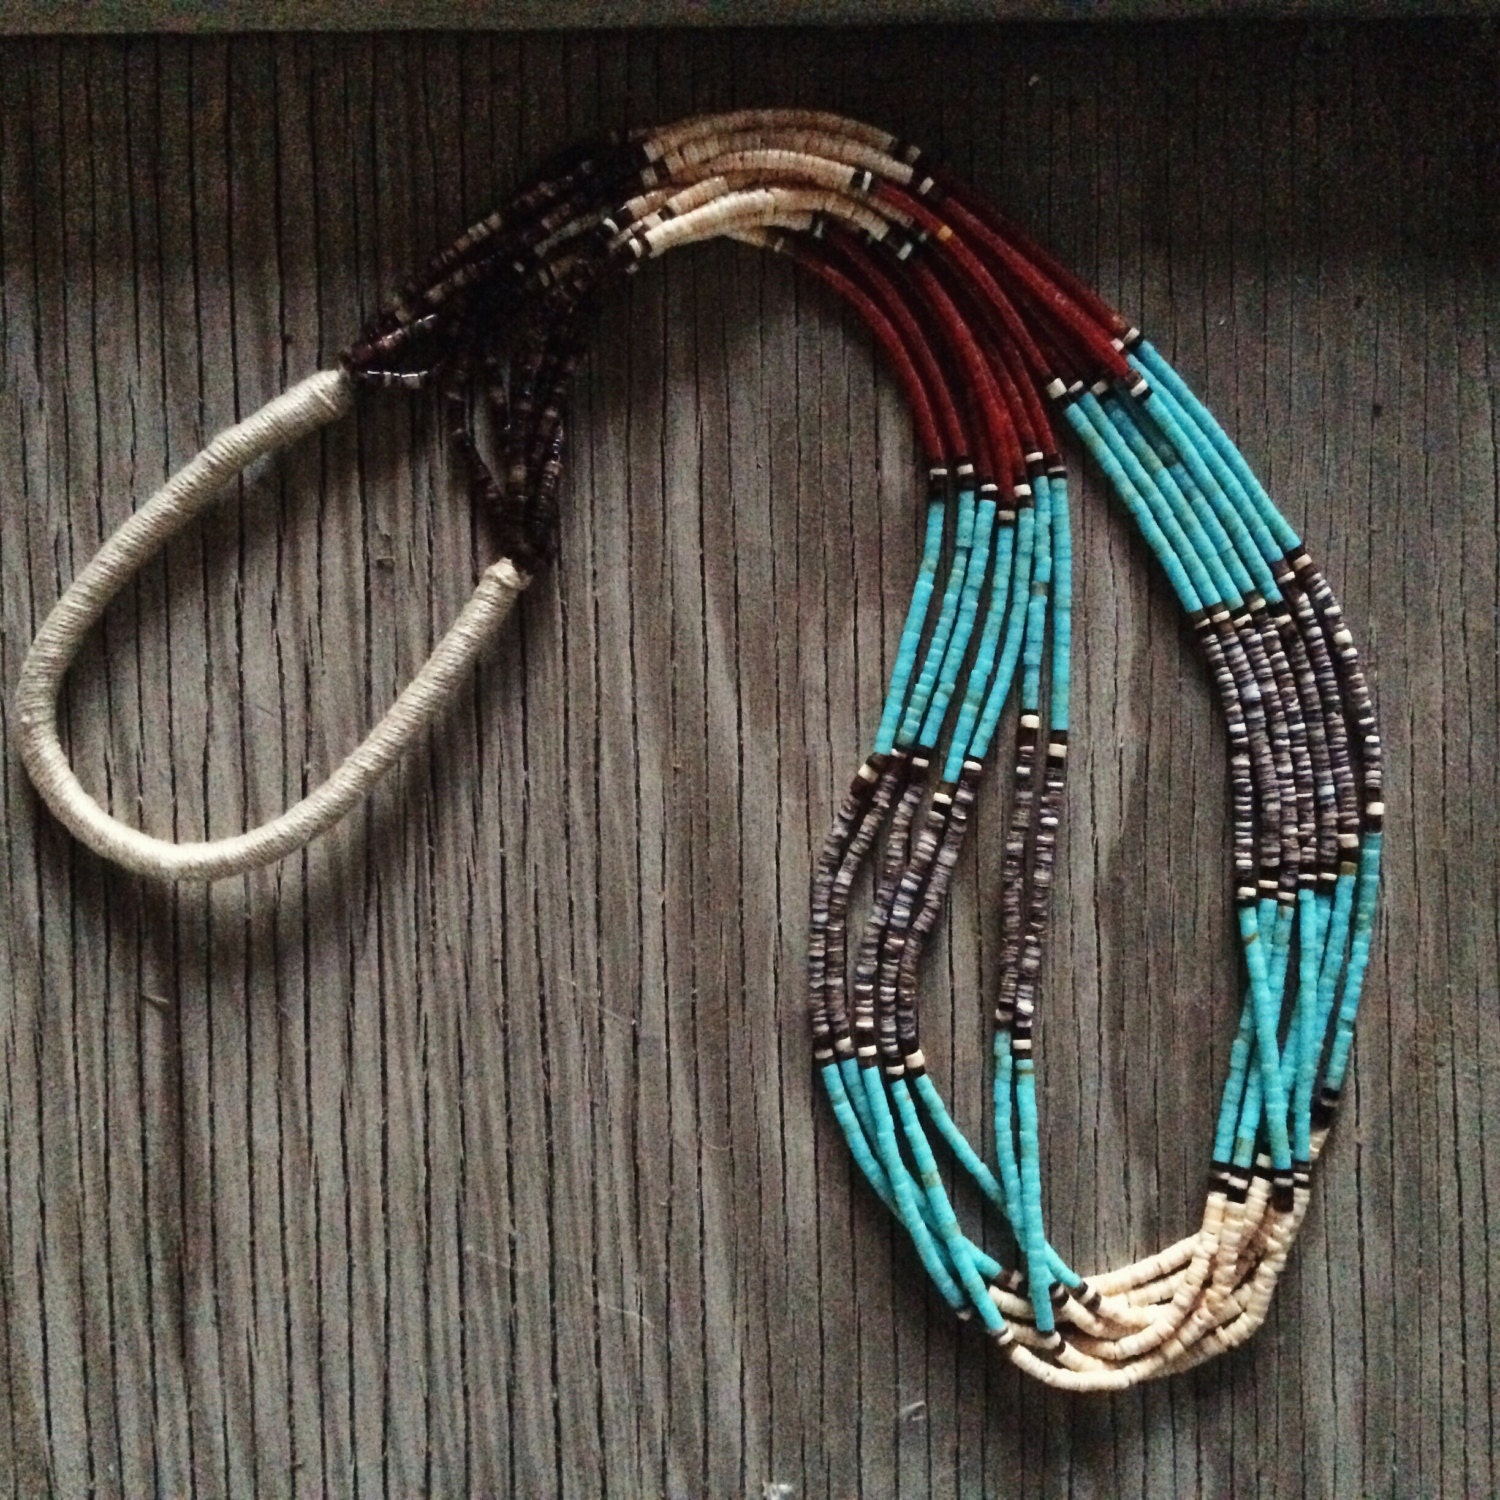 necklace lita kingman atencio necklacewith turquoise domingo artist jewelry indian santo pueblo product by with heishi